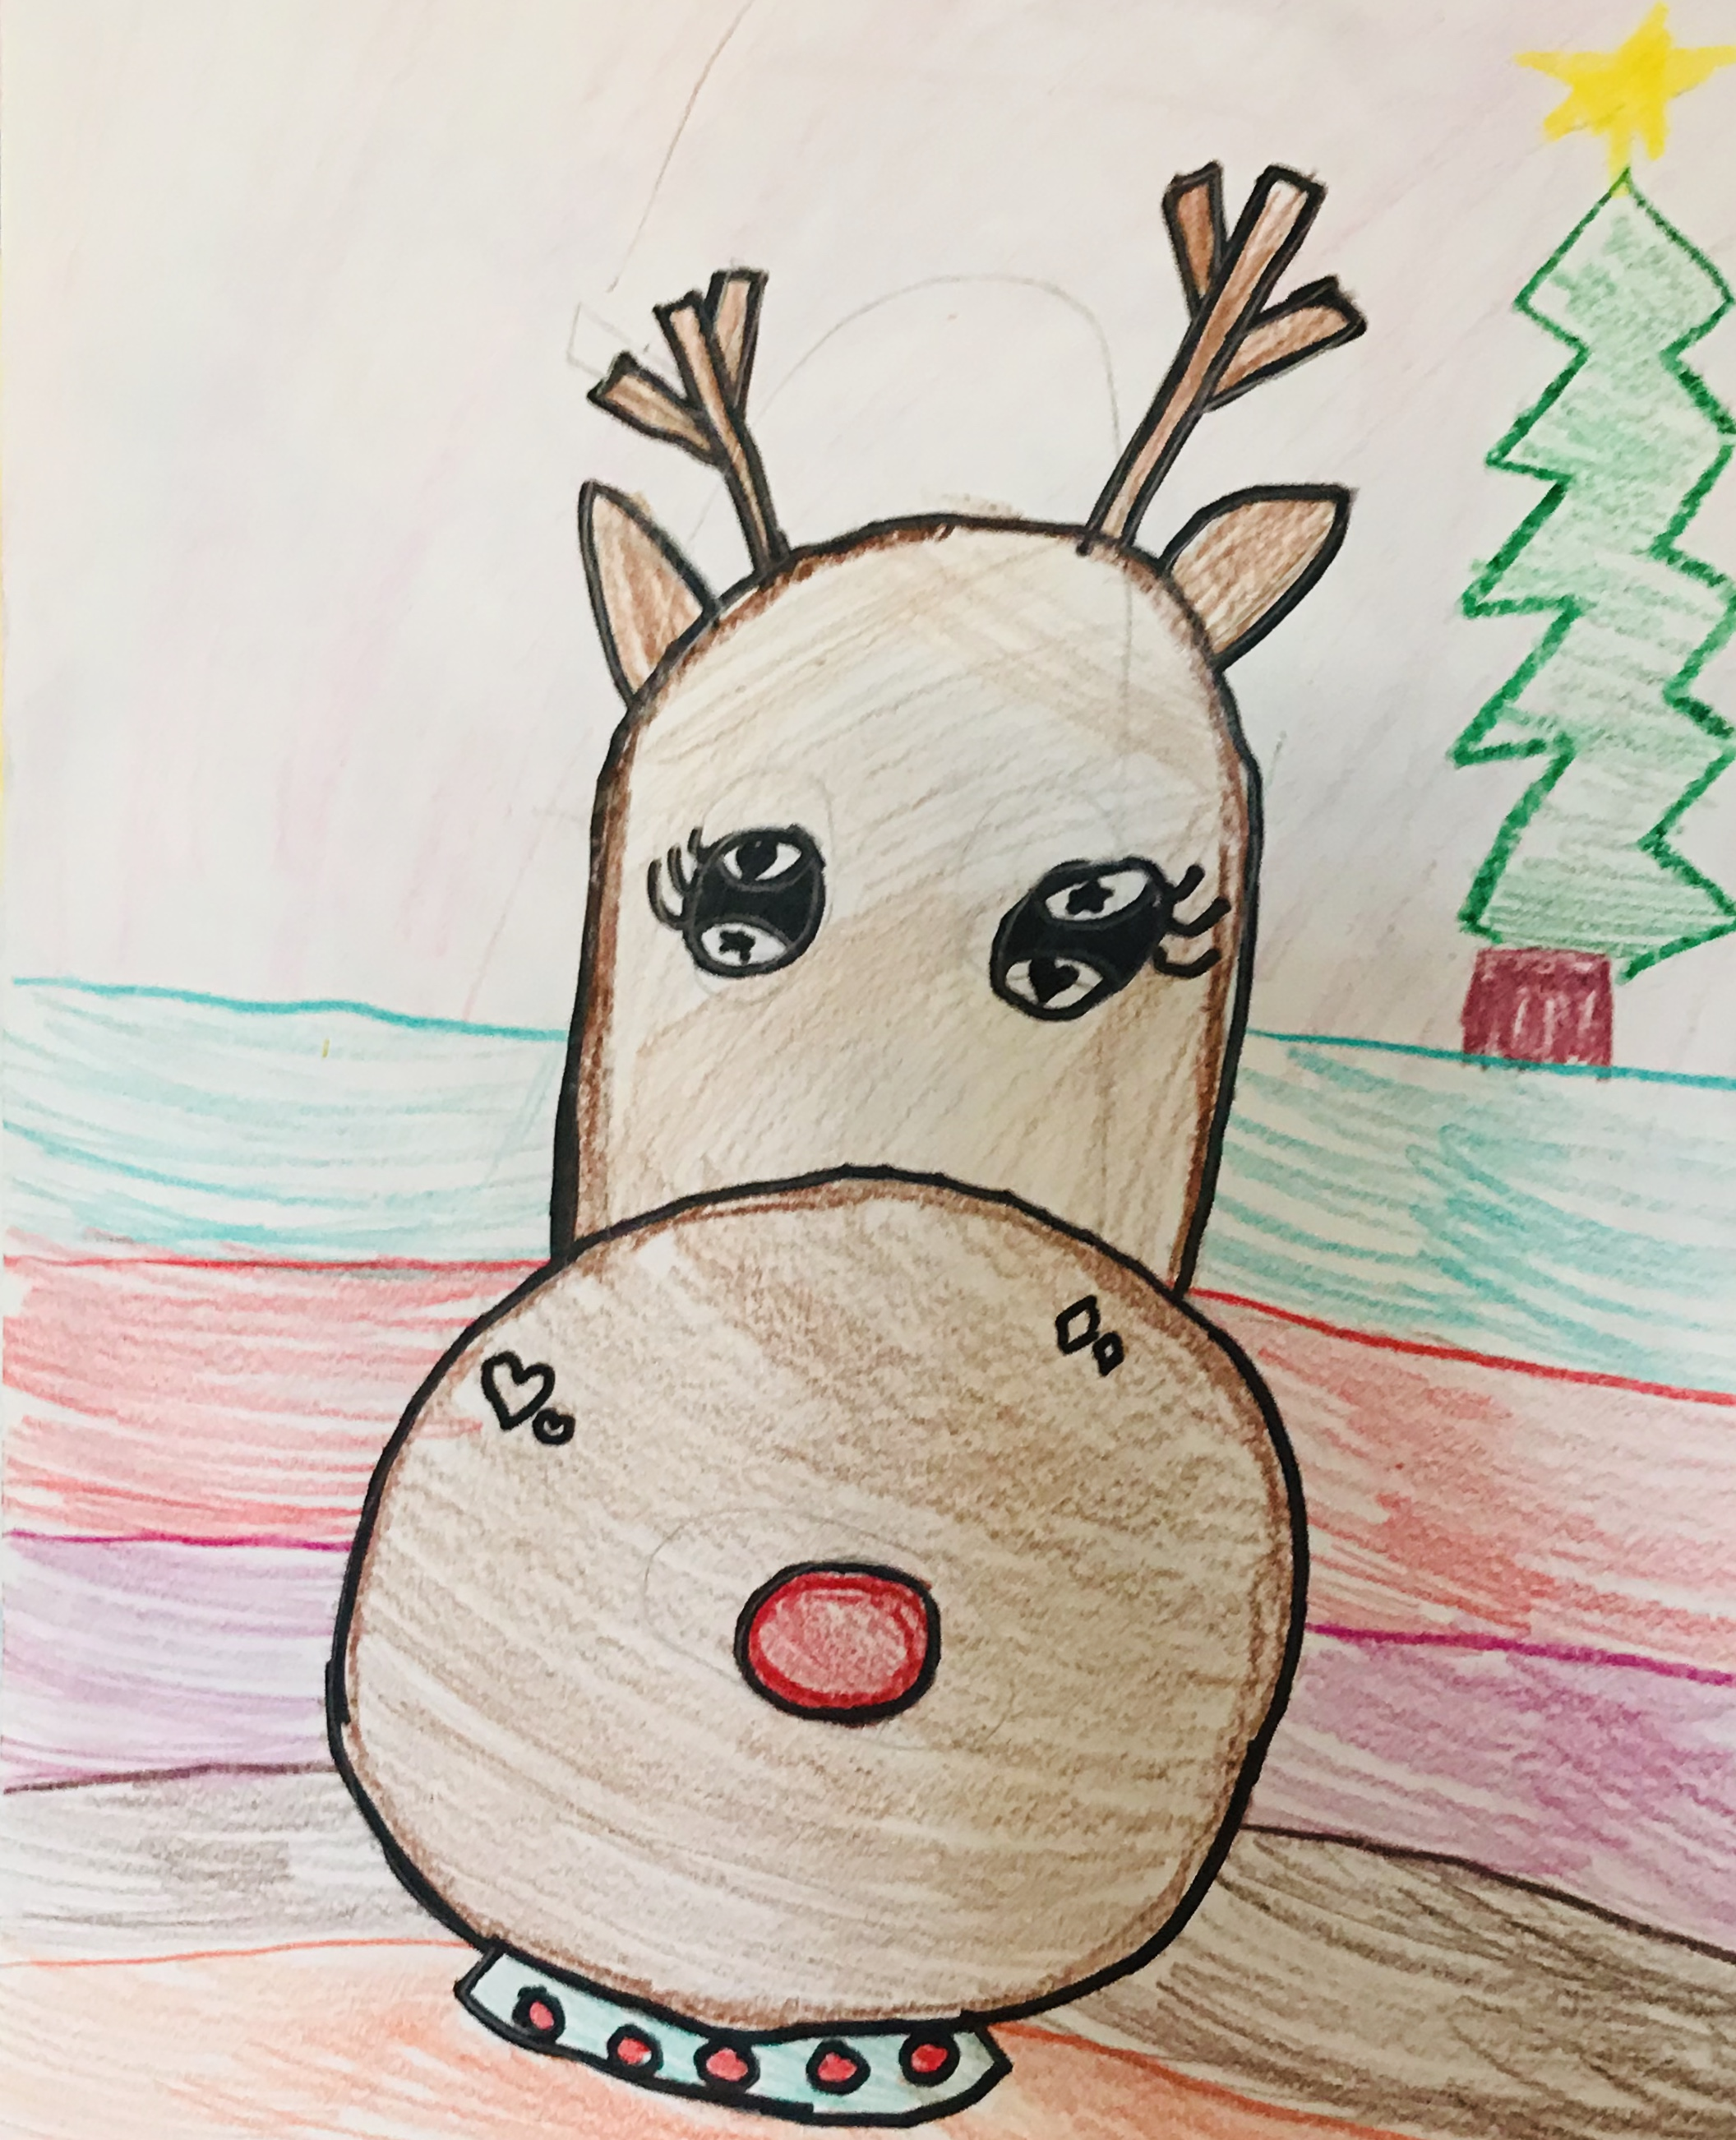 Drawn reindeer with Christmas tree background